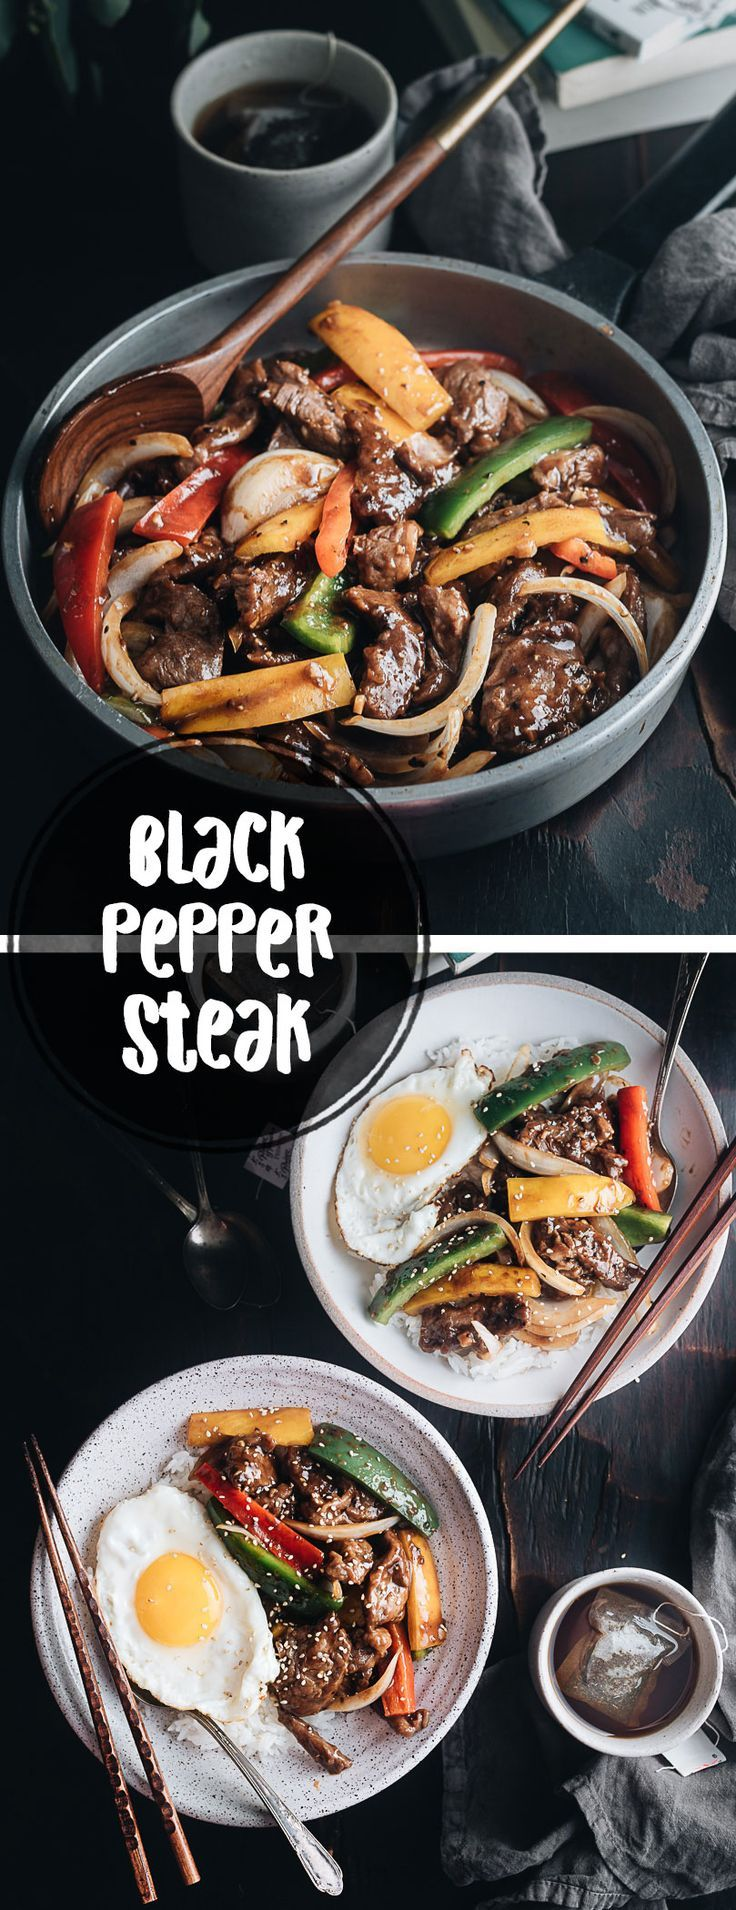 Restaurant-style black pepper steak that is tender, juicy and rich, with crisp veggies and a scrumptious sauce that goes perfectly with steamed rice. {Gluten Free Adaptable}